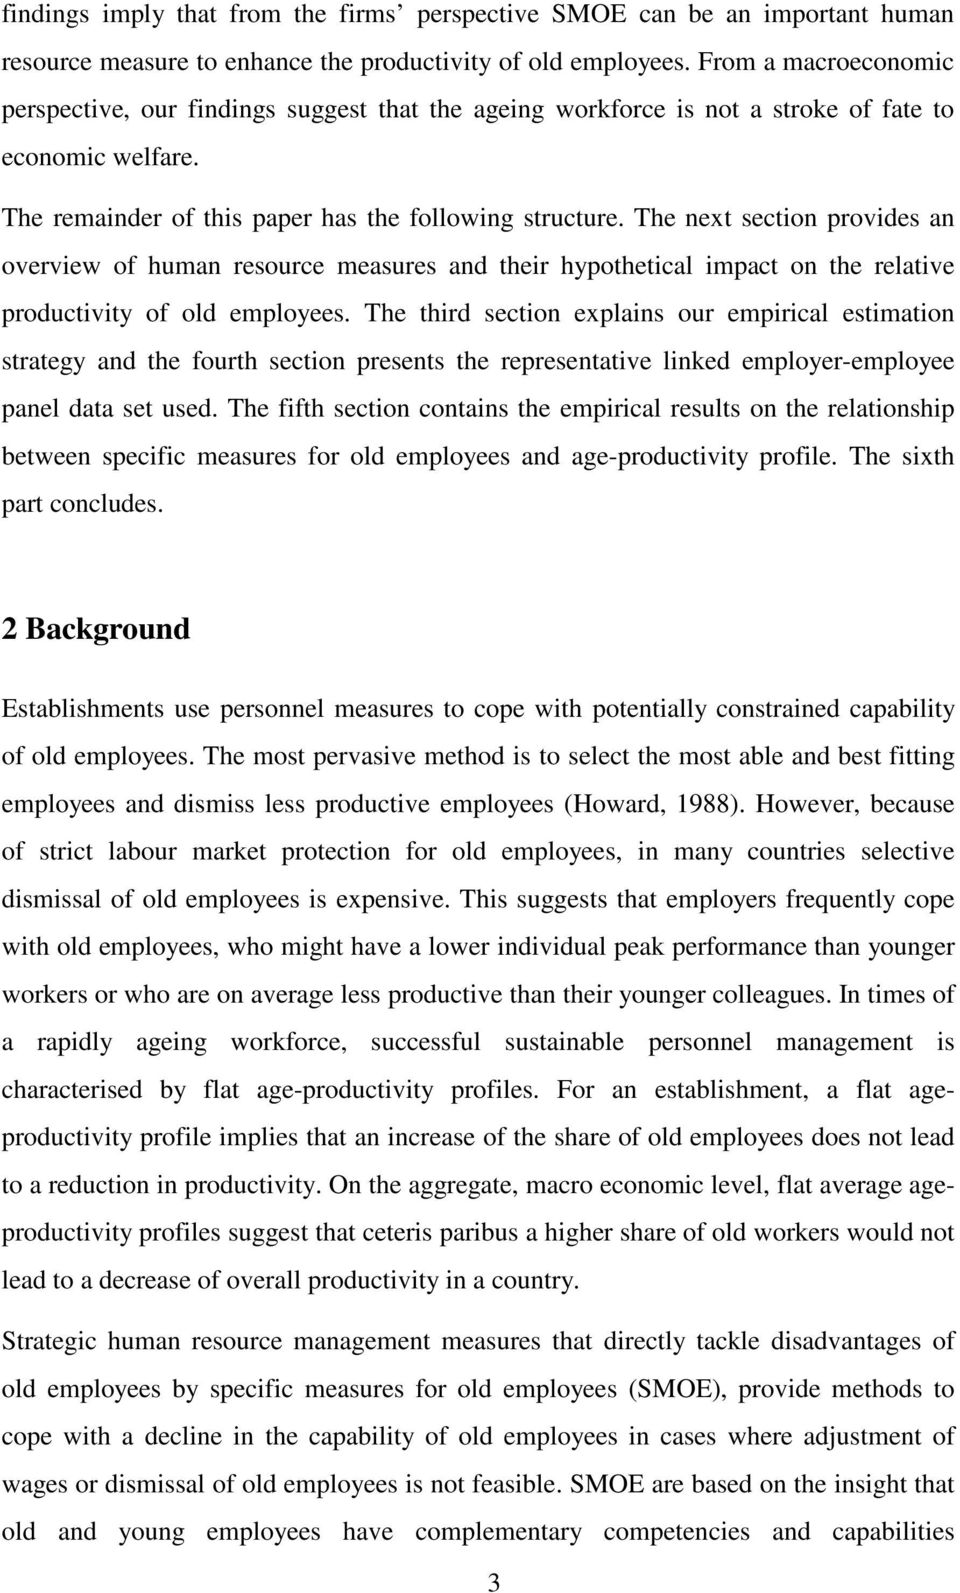 The next section provides an overview of human resource measures and their hypothetical impact on the relative productivity of old employees.